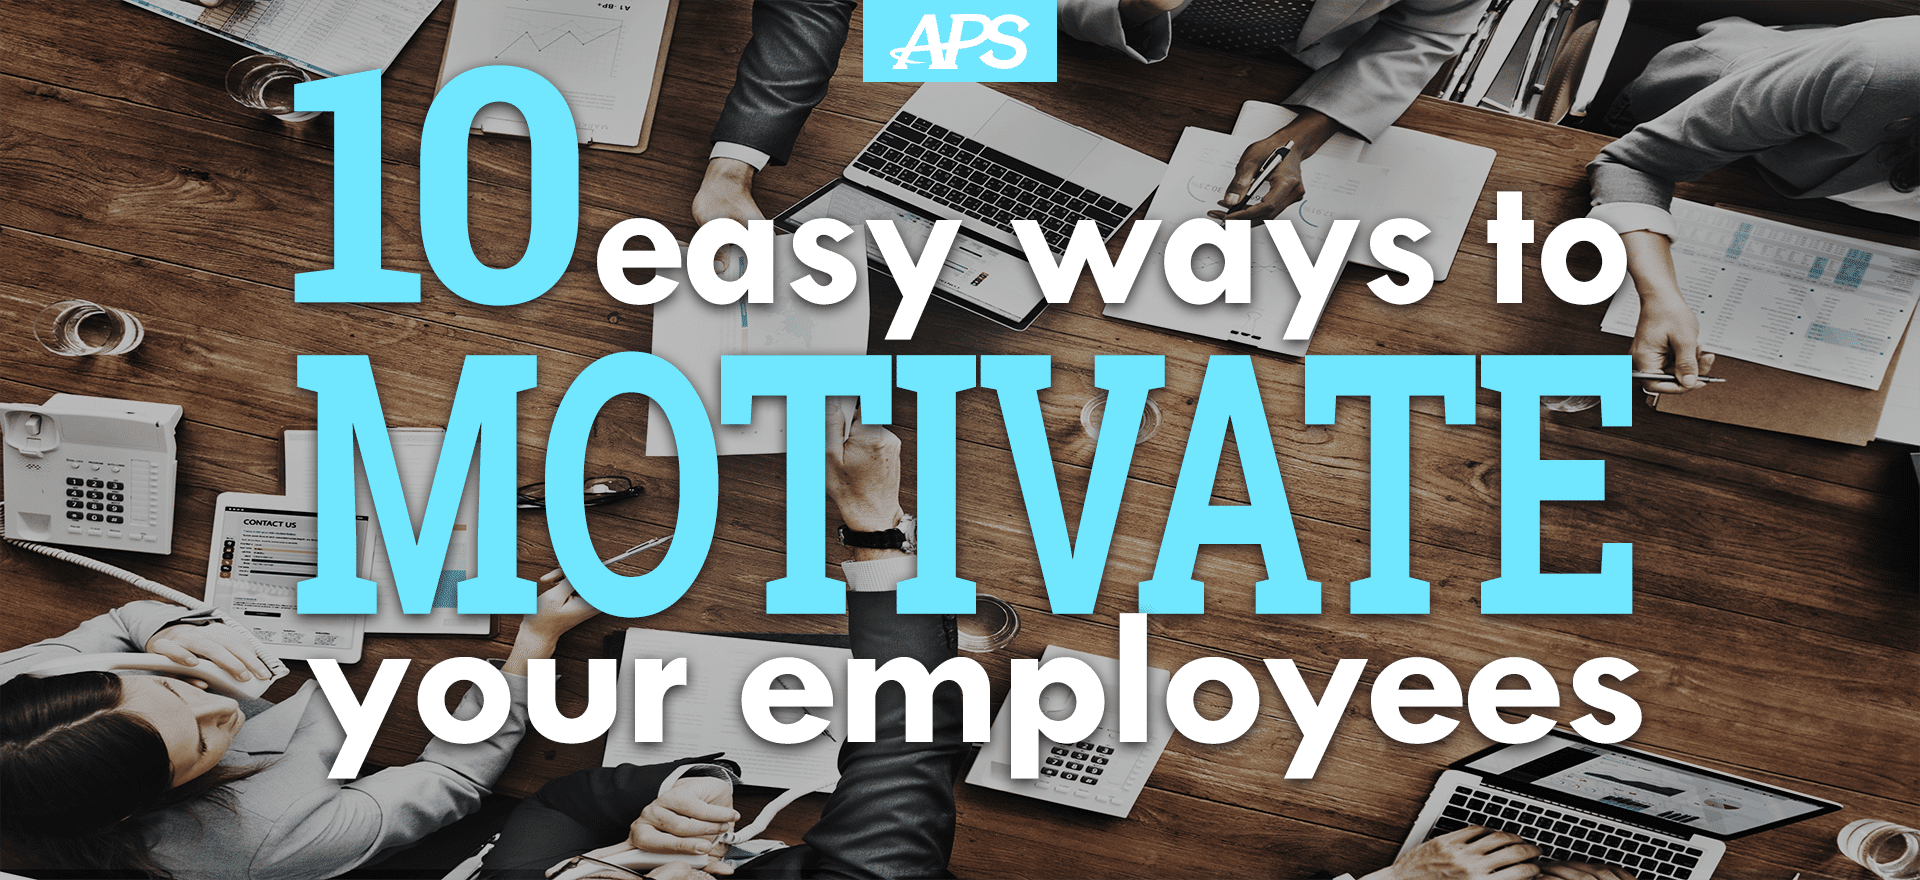 10 Easy Ways To Motivate Your Employees